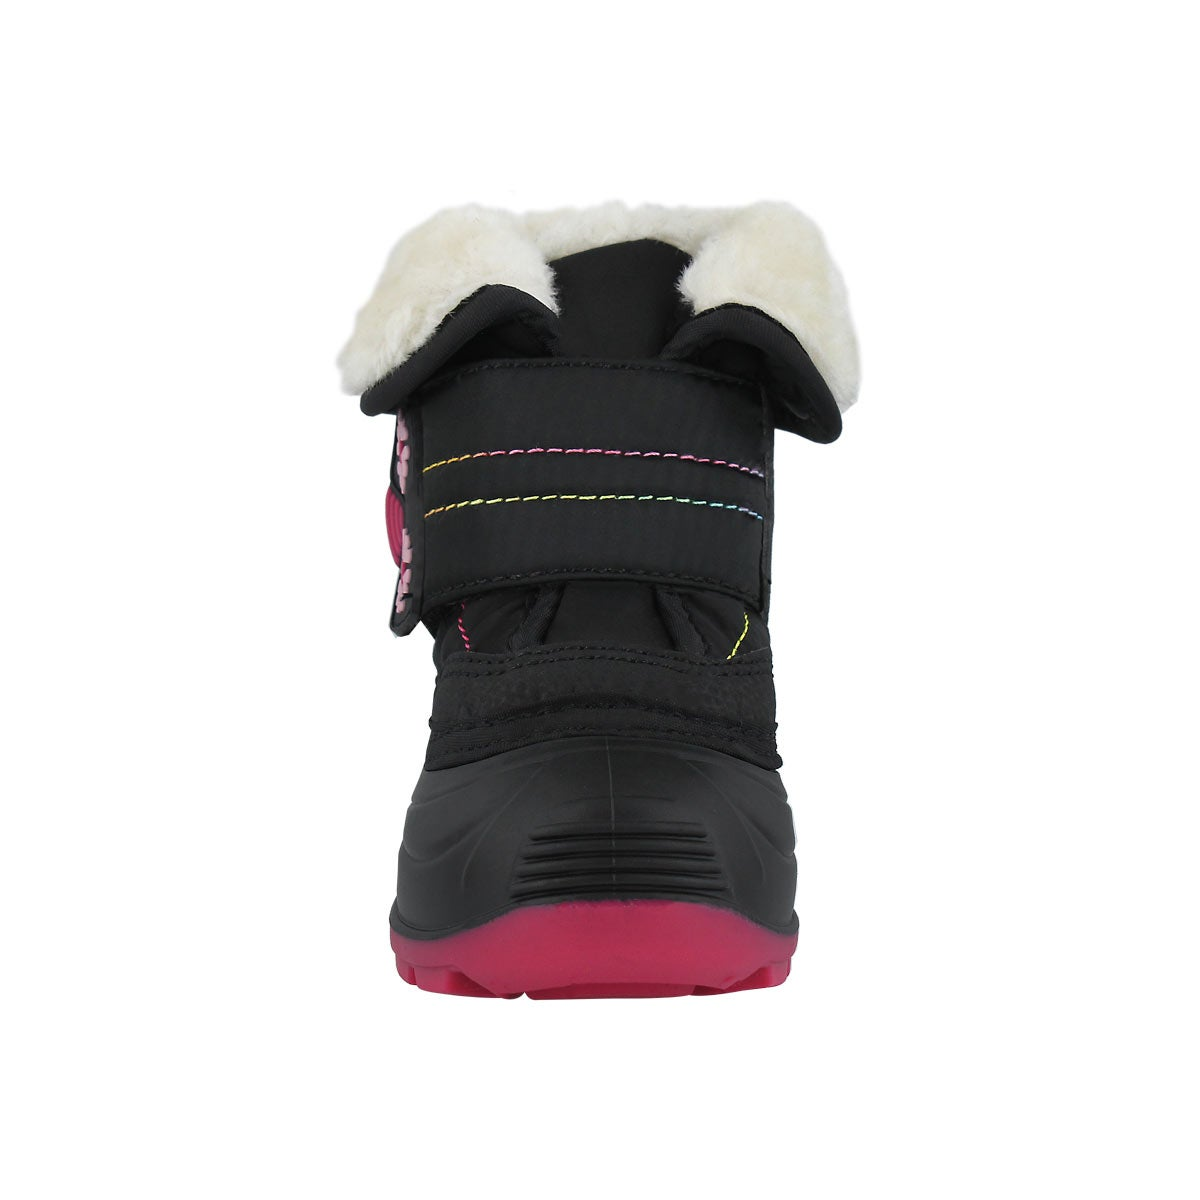 Inf-g Frostine blk/ros ewtp winter boot